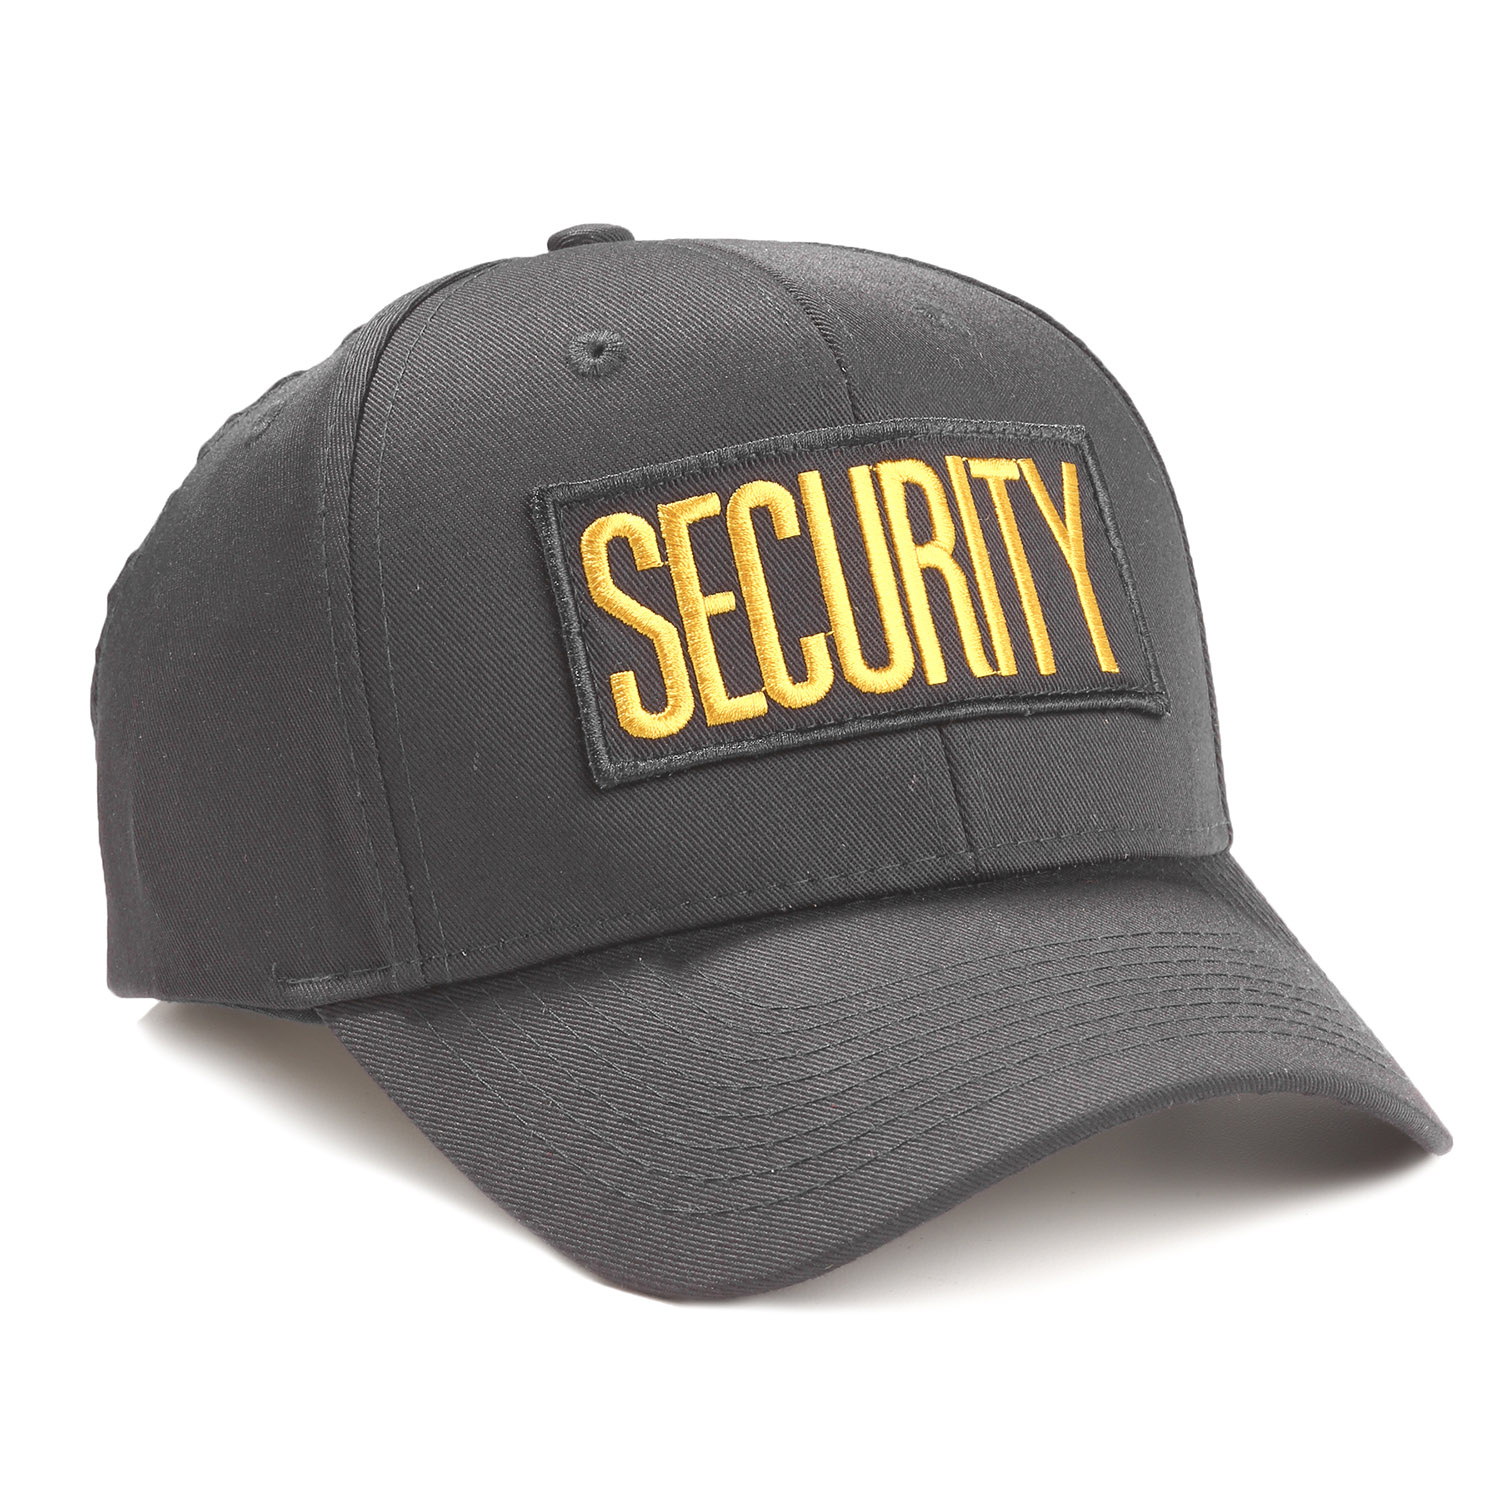 LawPro Winter Weight Cap with Security